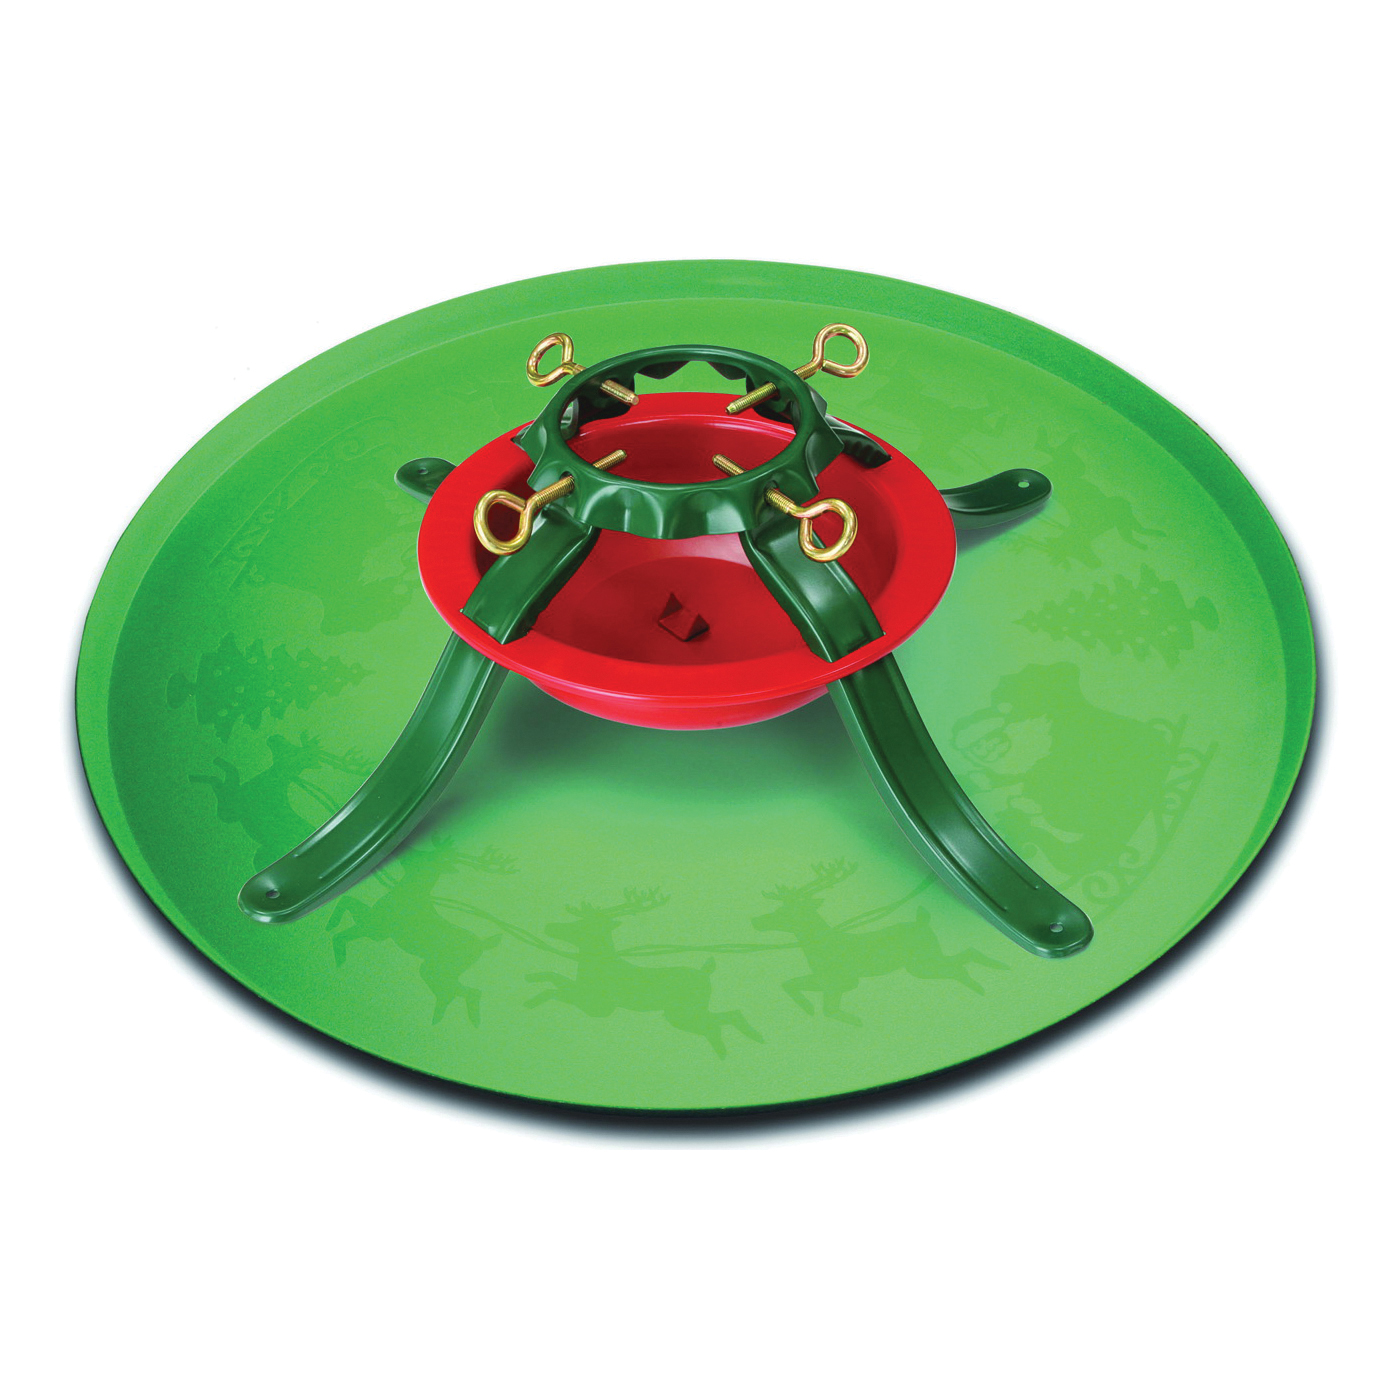 Picture of National Holidays HandiThings XTRA Tree Stand Tray, 28-1/2 in W, Plastic, Green